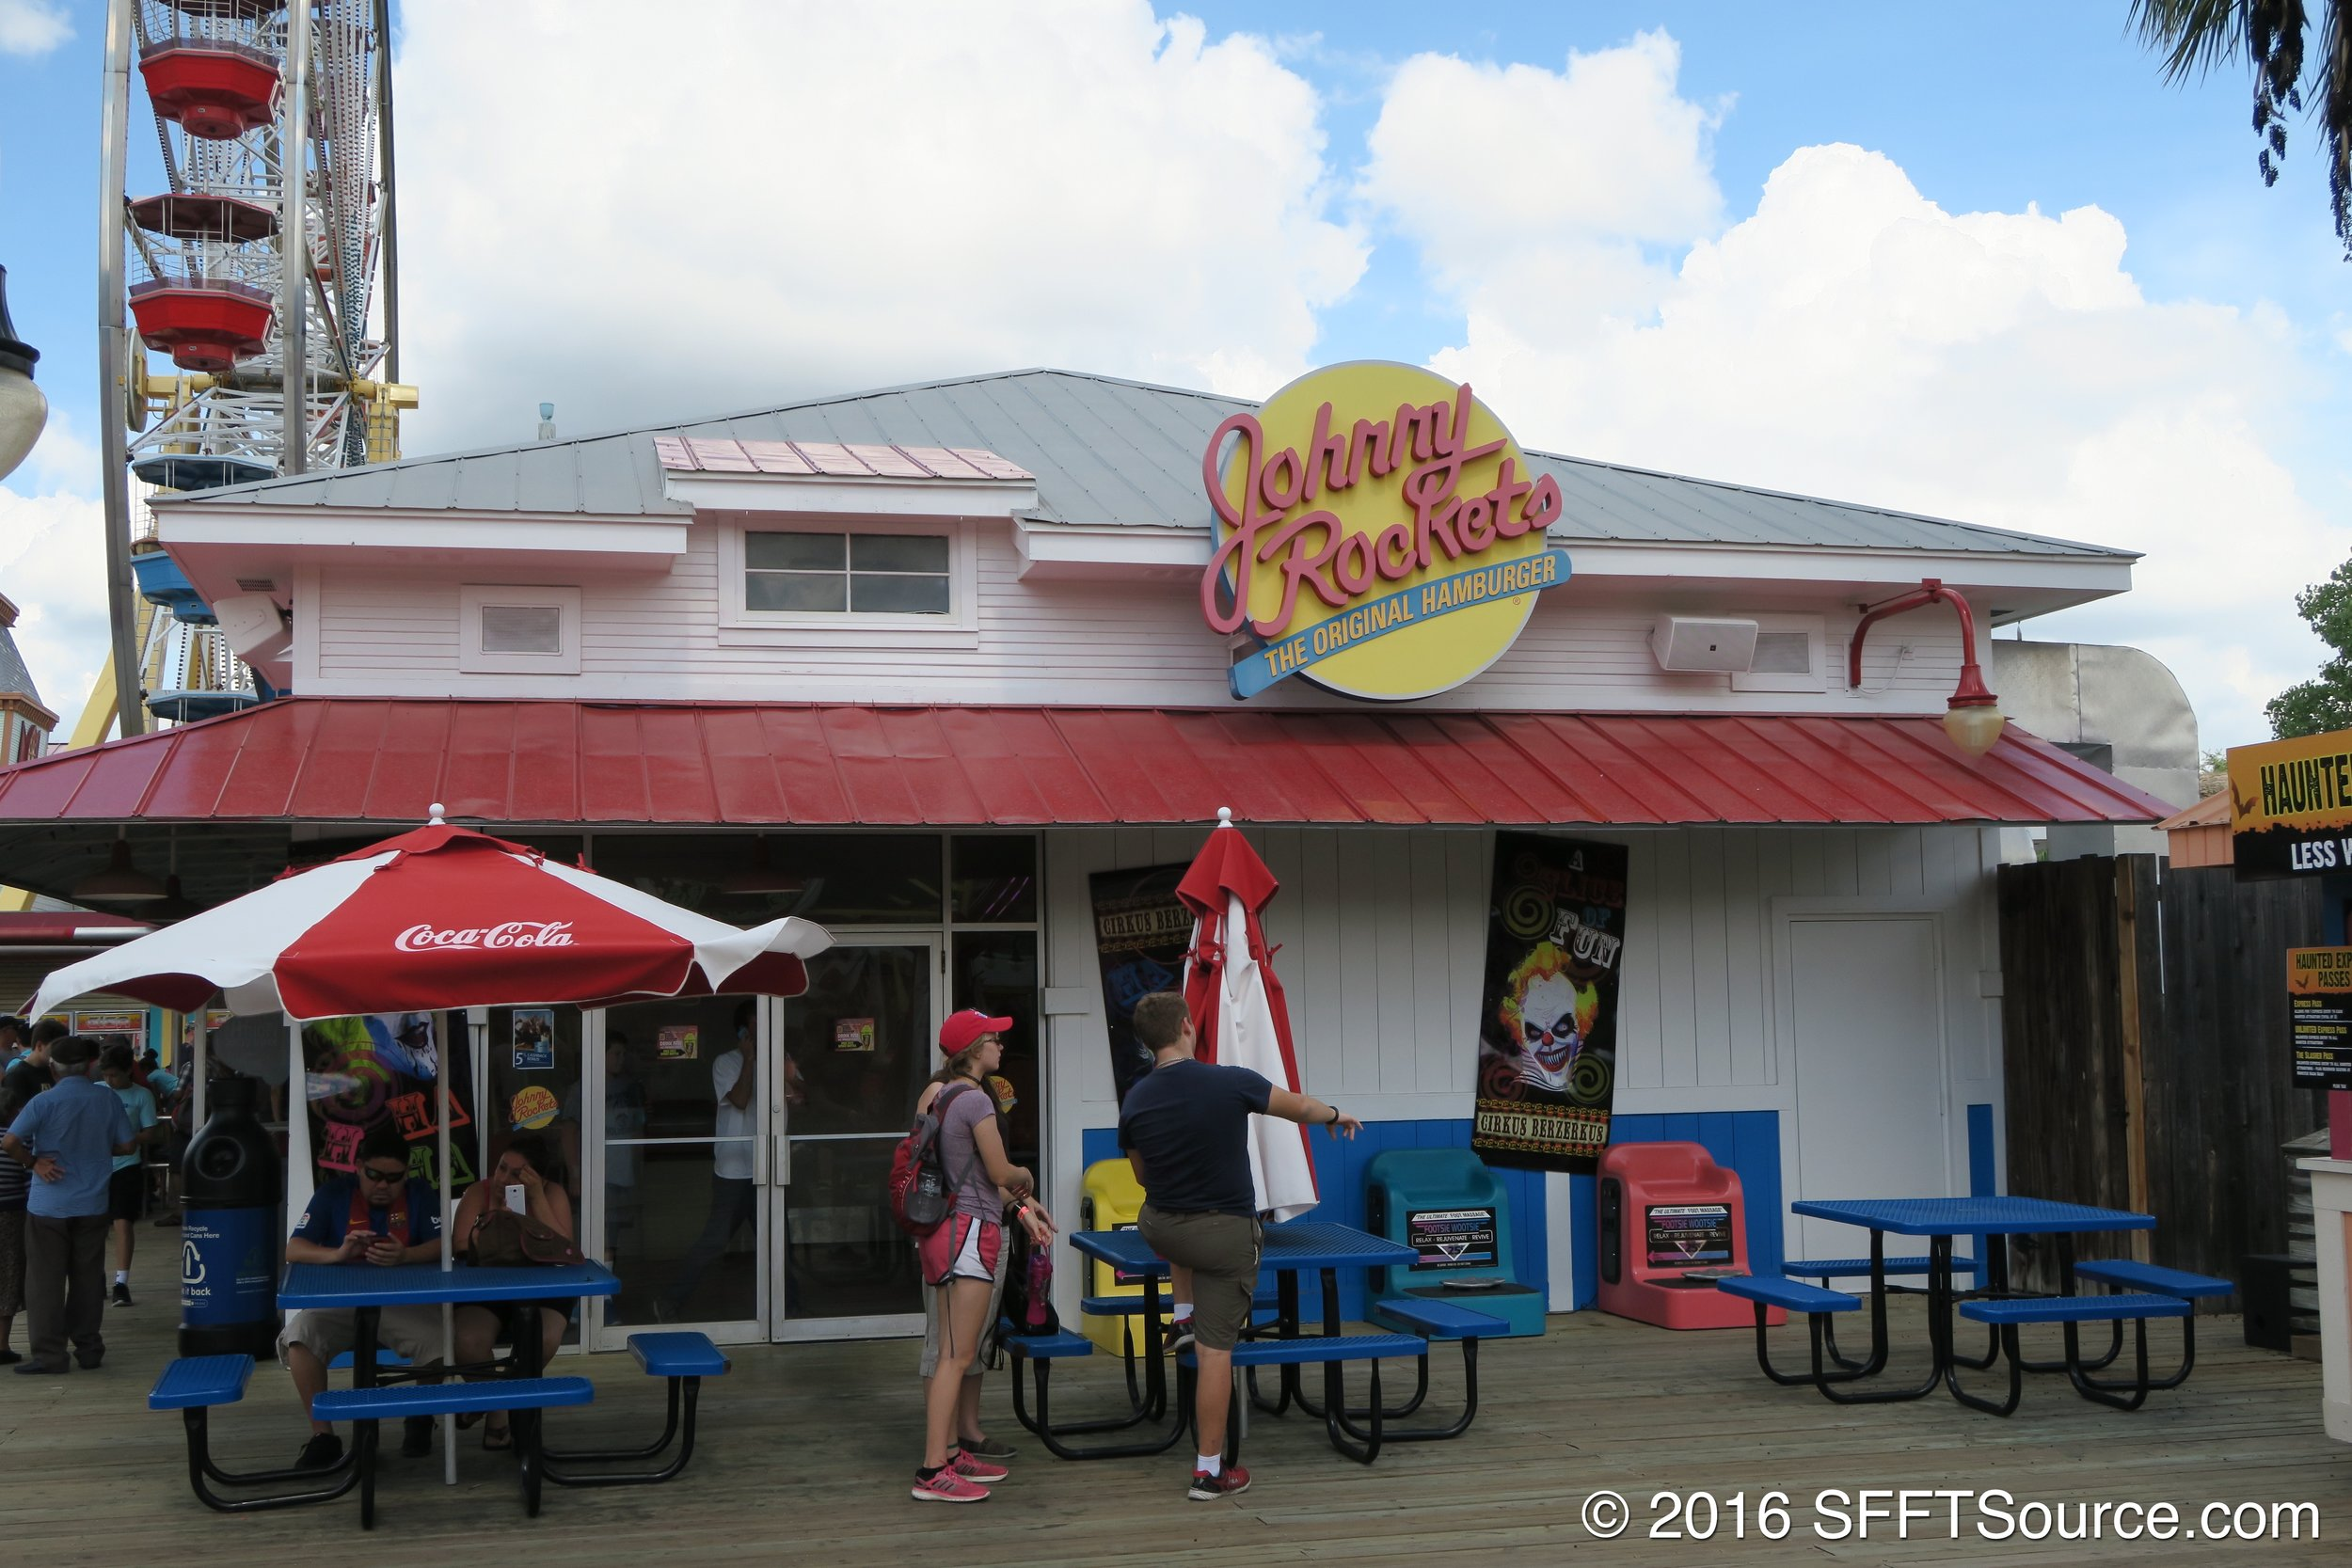 The Johnny Rockets location on Fiesta Bay Boardwalk.